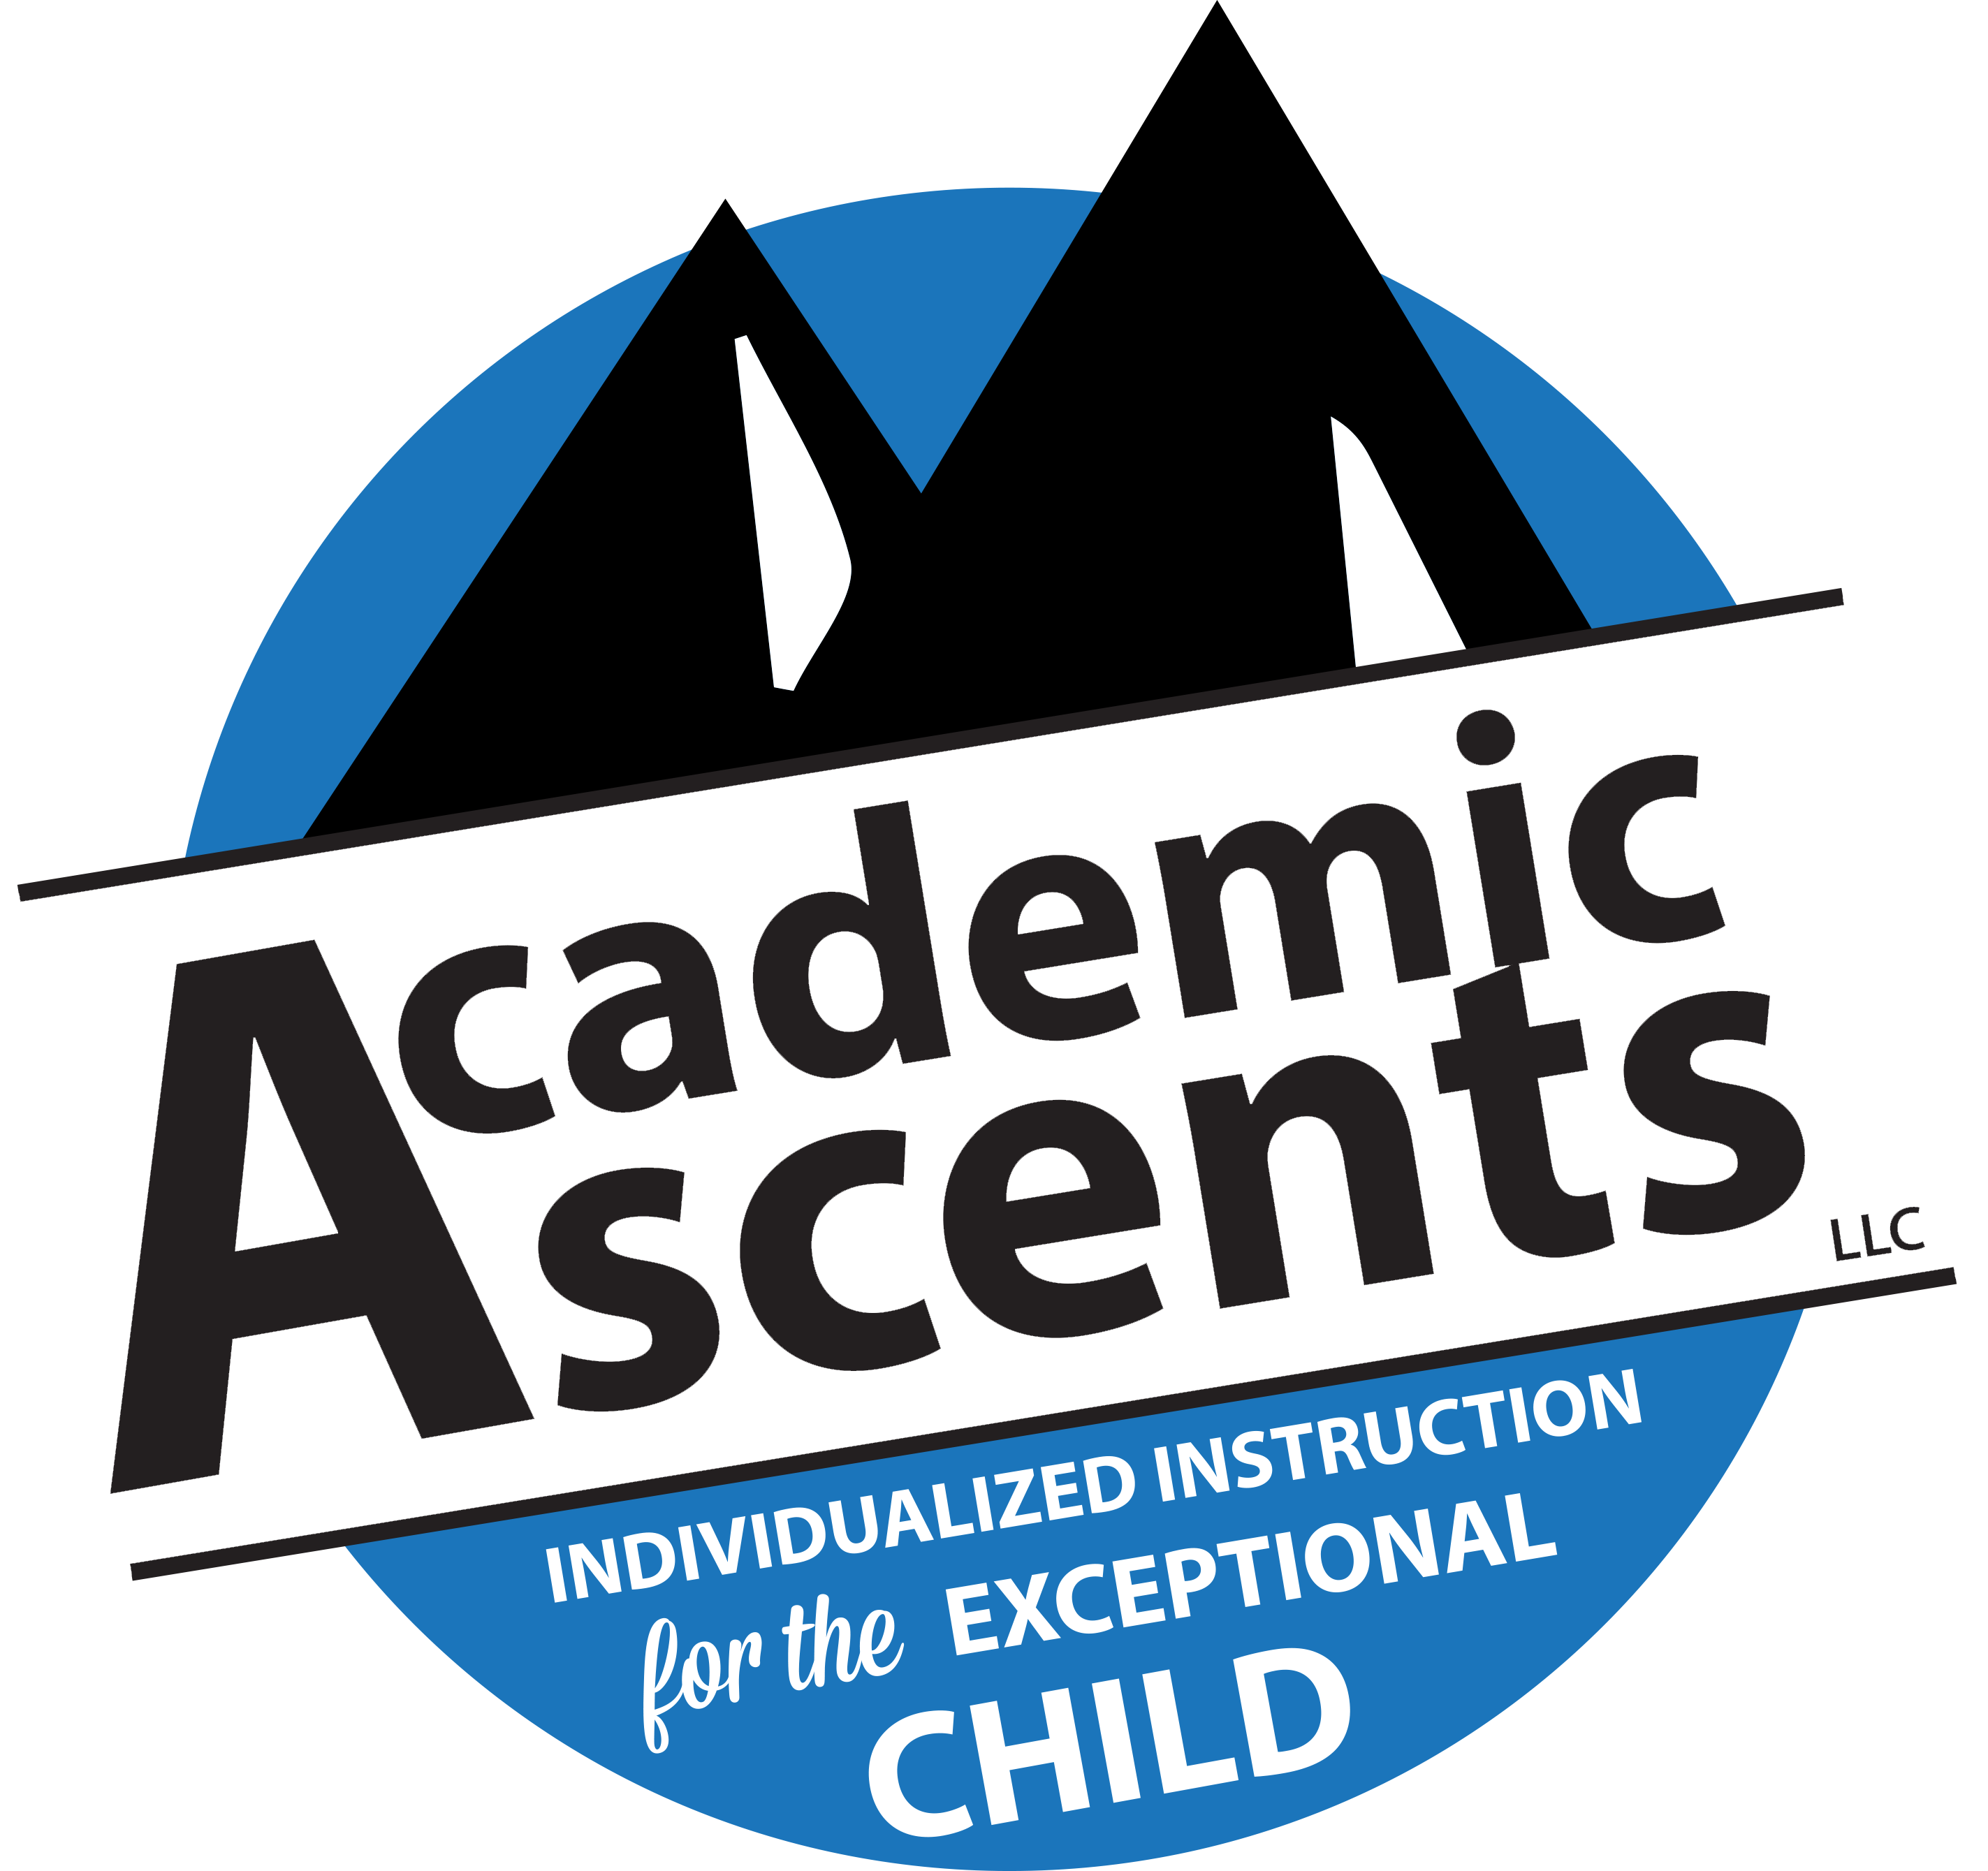 Home page link: academic ascents company logo